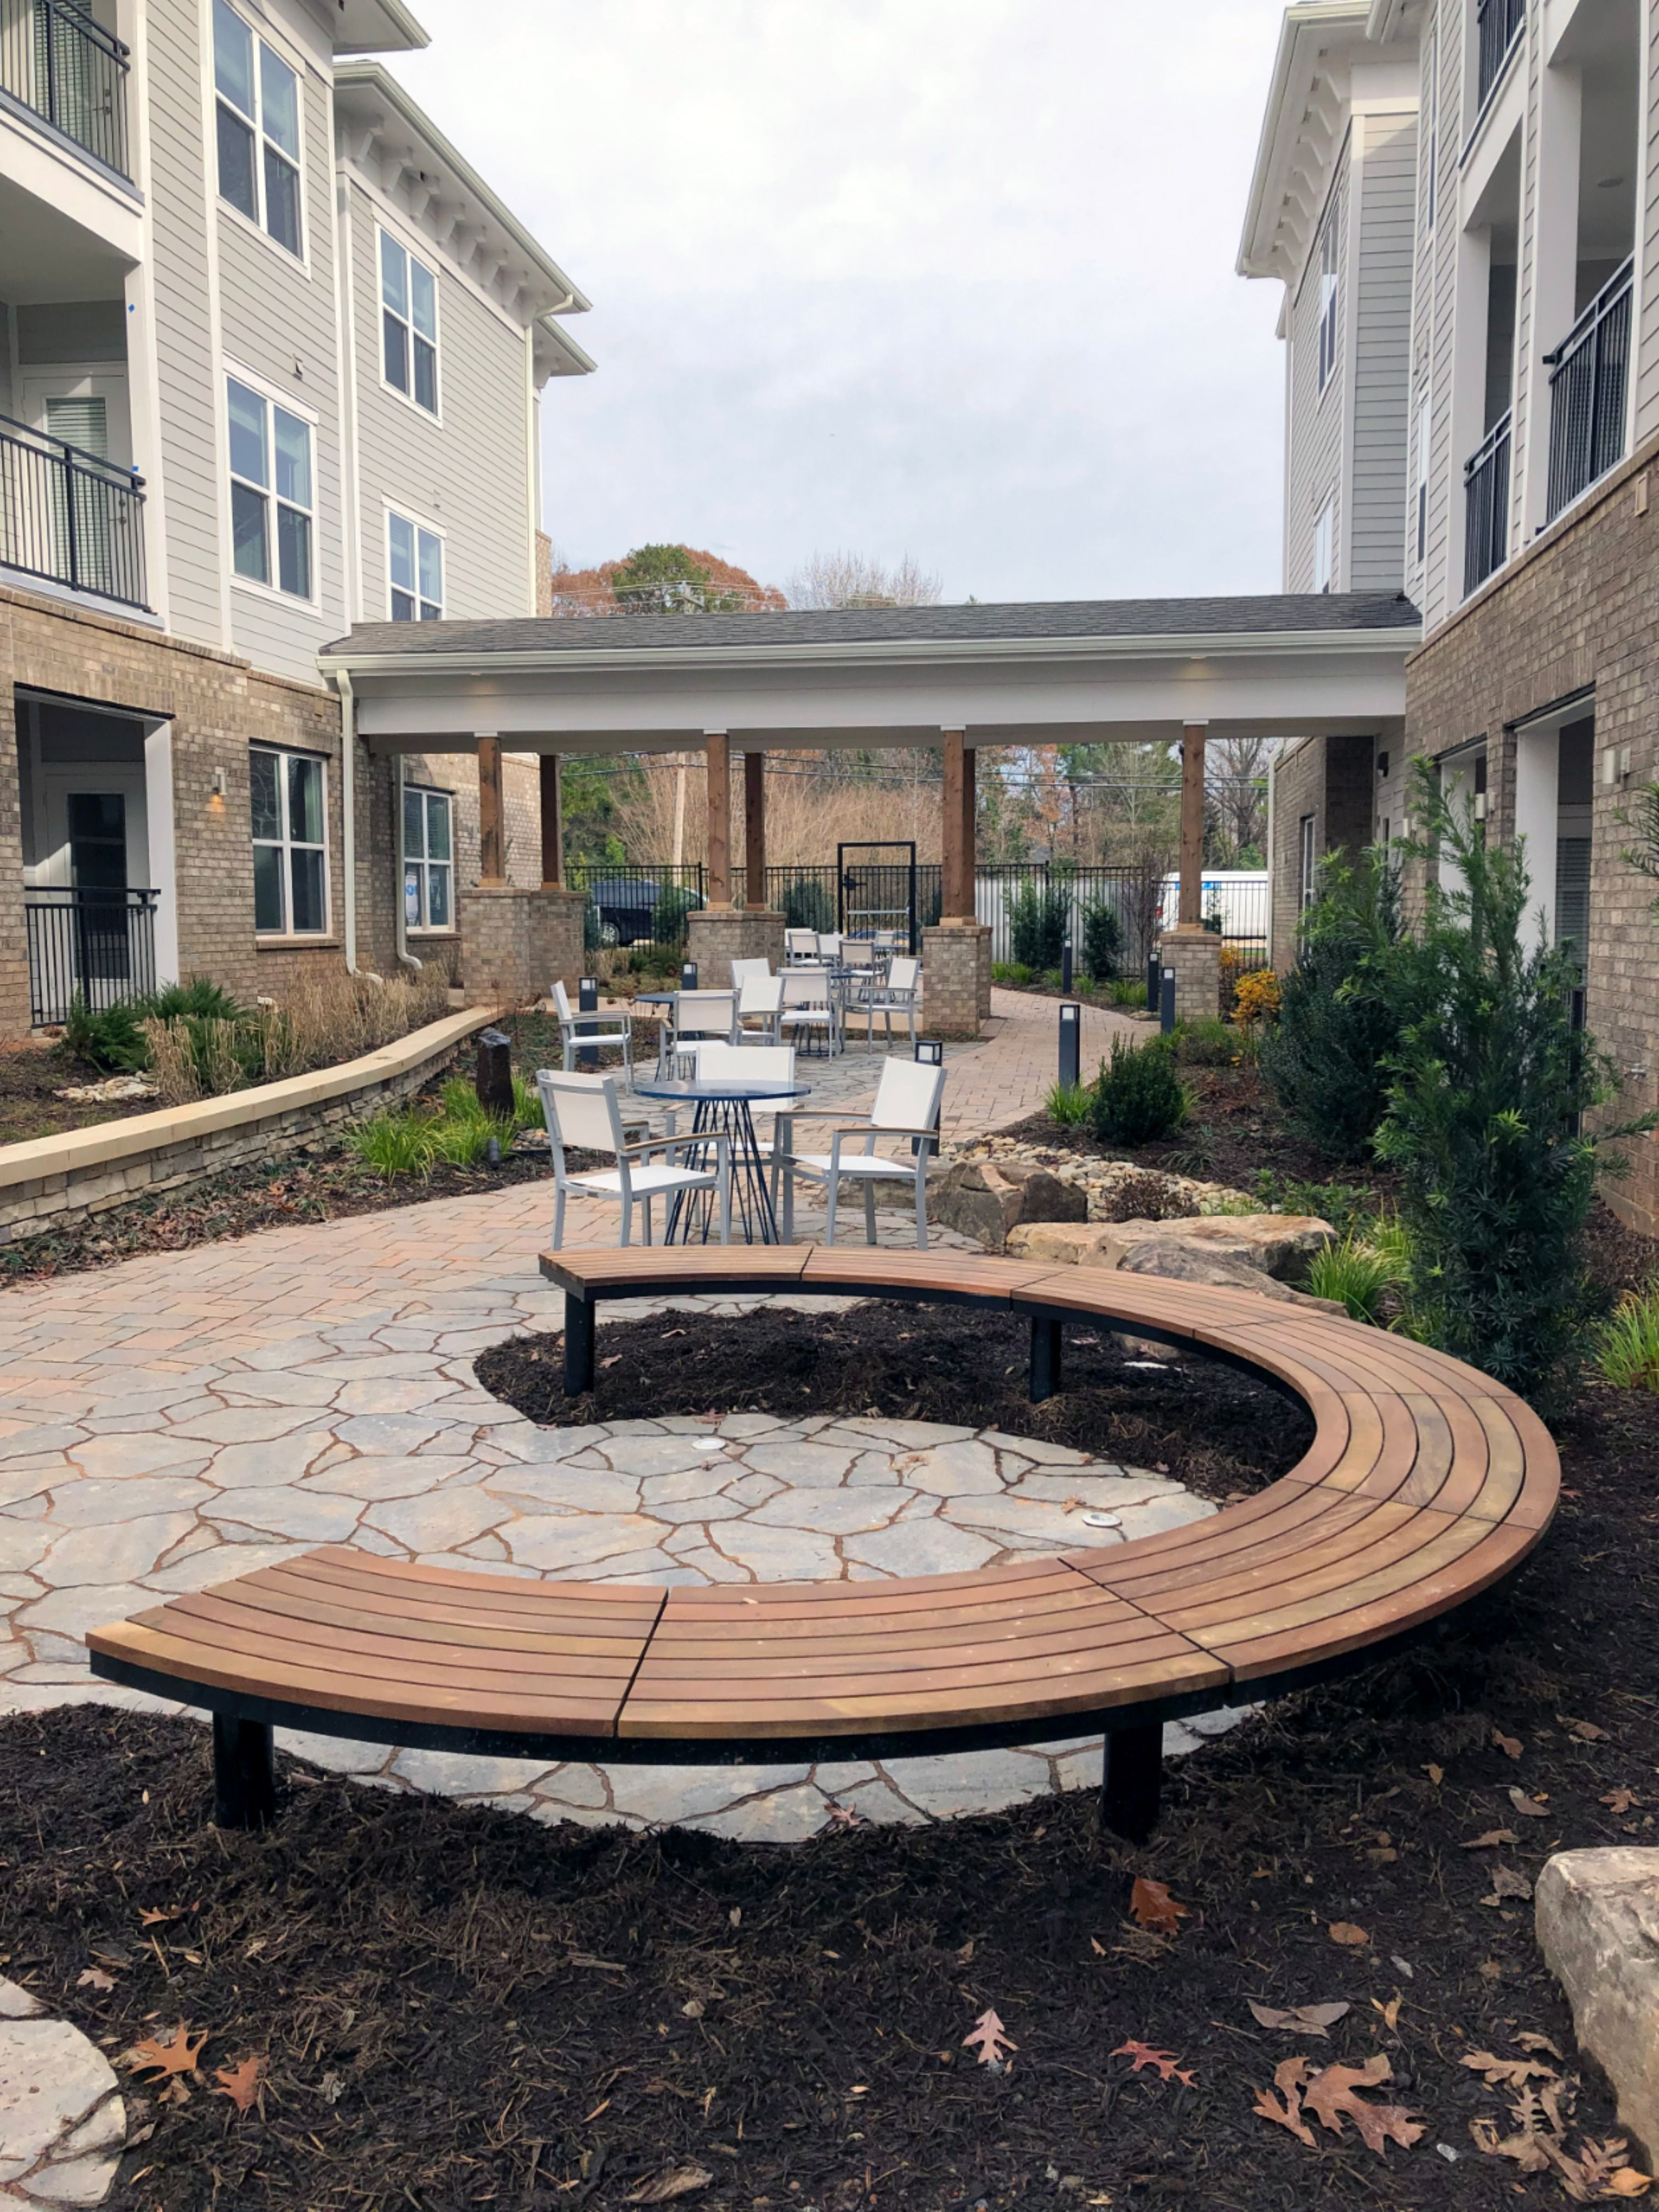 The Ogden Collection curved bench is distinctive and inviting in this residential courtyard. #Maglin #MaglinSiteFurniture #LandscapeArchitecture #LandscapeDesign #CurvedBench #CourtyardDesign